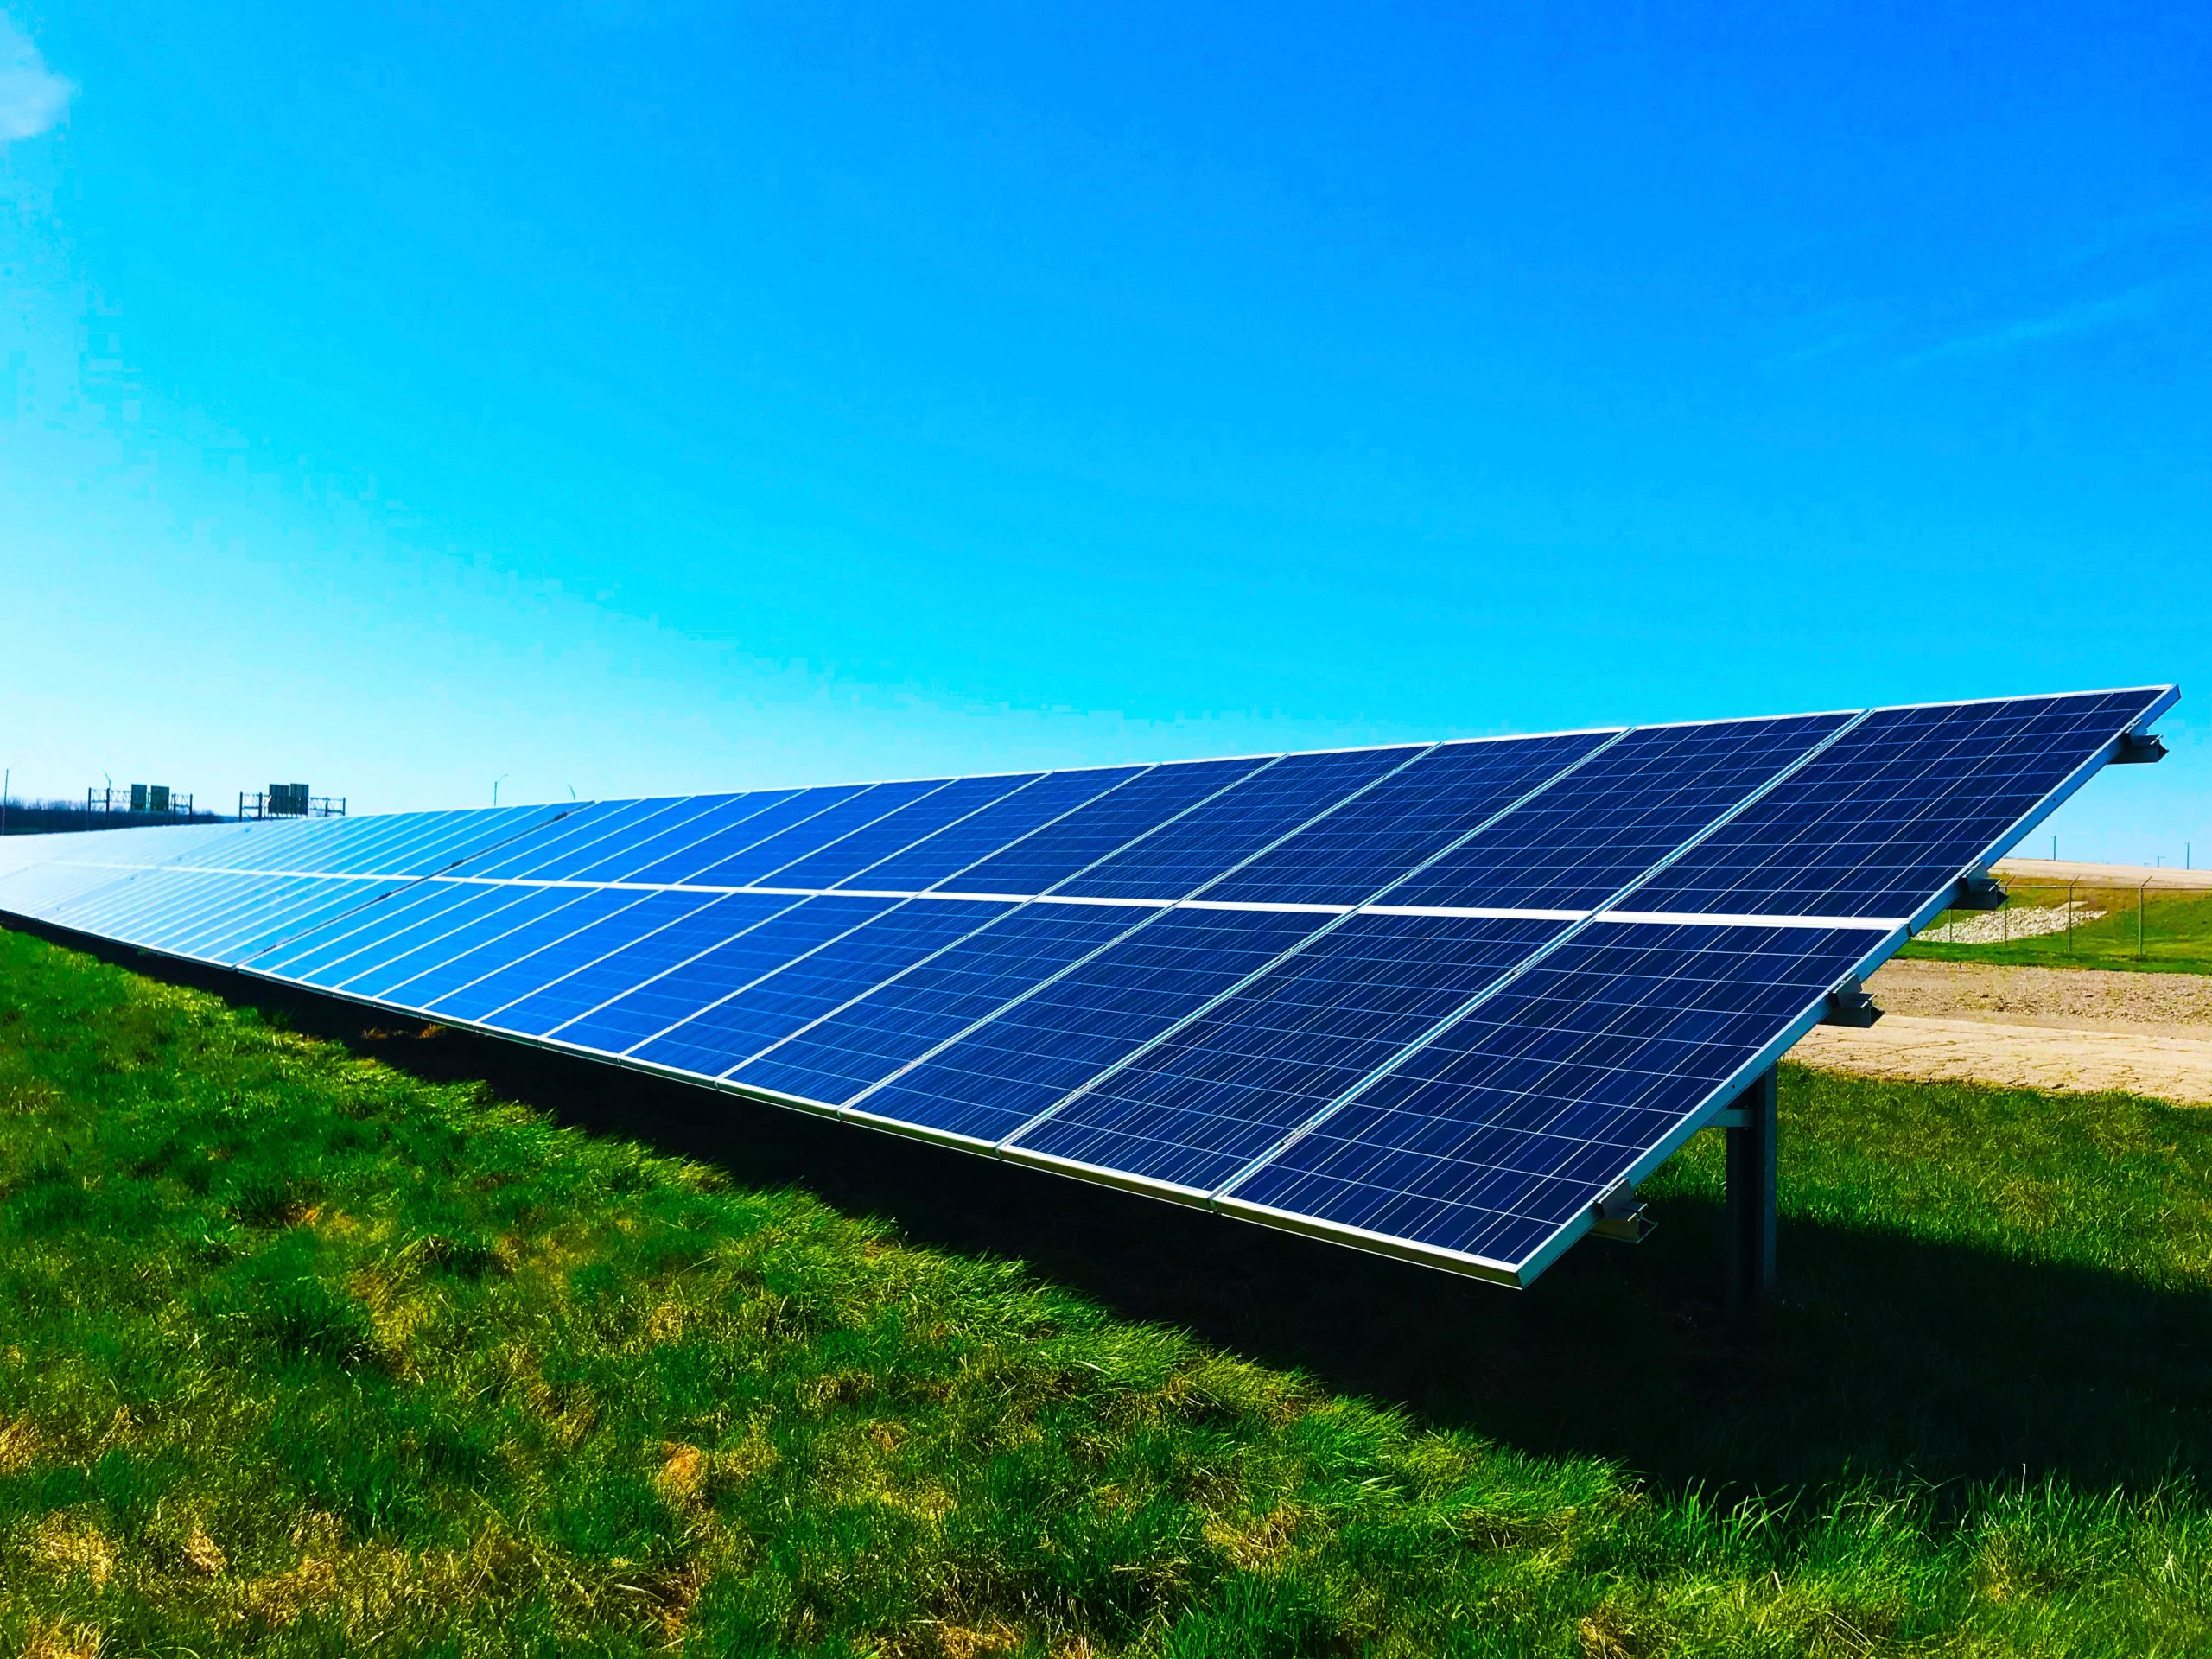 Queensland utility teams with BoM to boost solar and wind forecasting